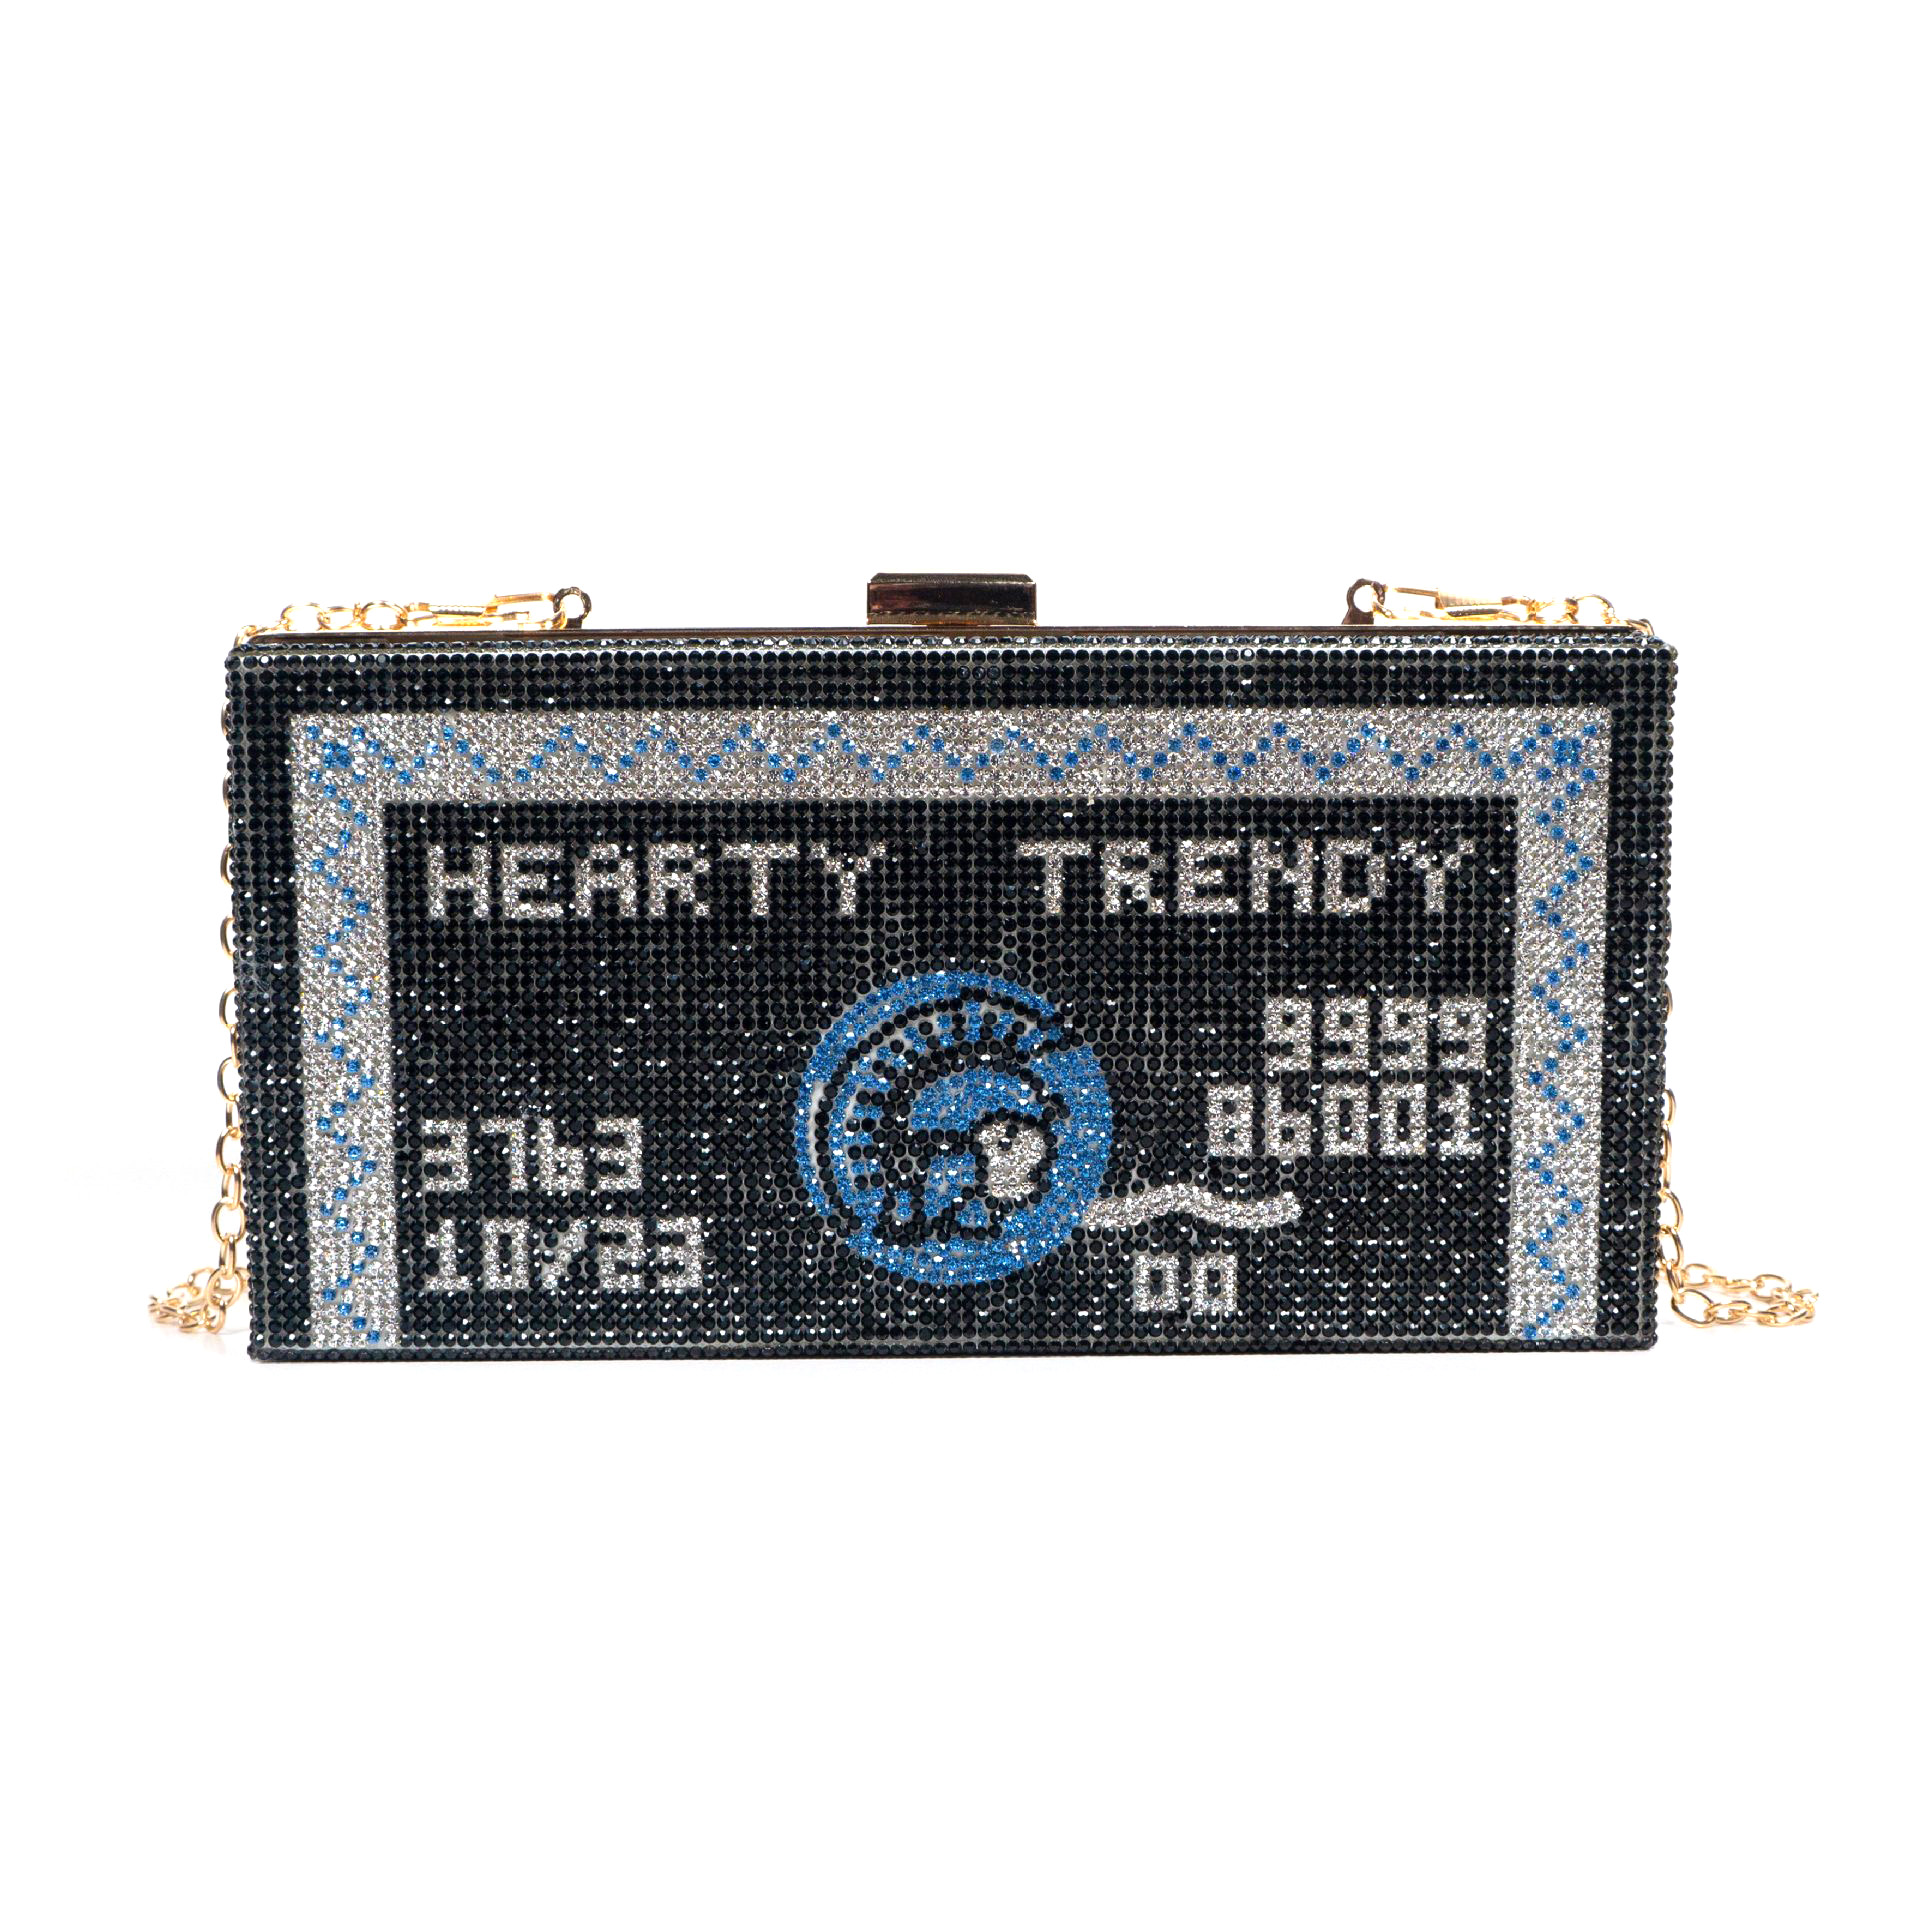 Bags for Woman AMEX Centurion Card Women Crystal Clutch Purse Metal Box Evening Bags Wedding Party Handbags Cocktail Dinner Bag-BeeInFly